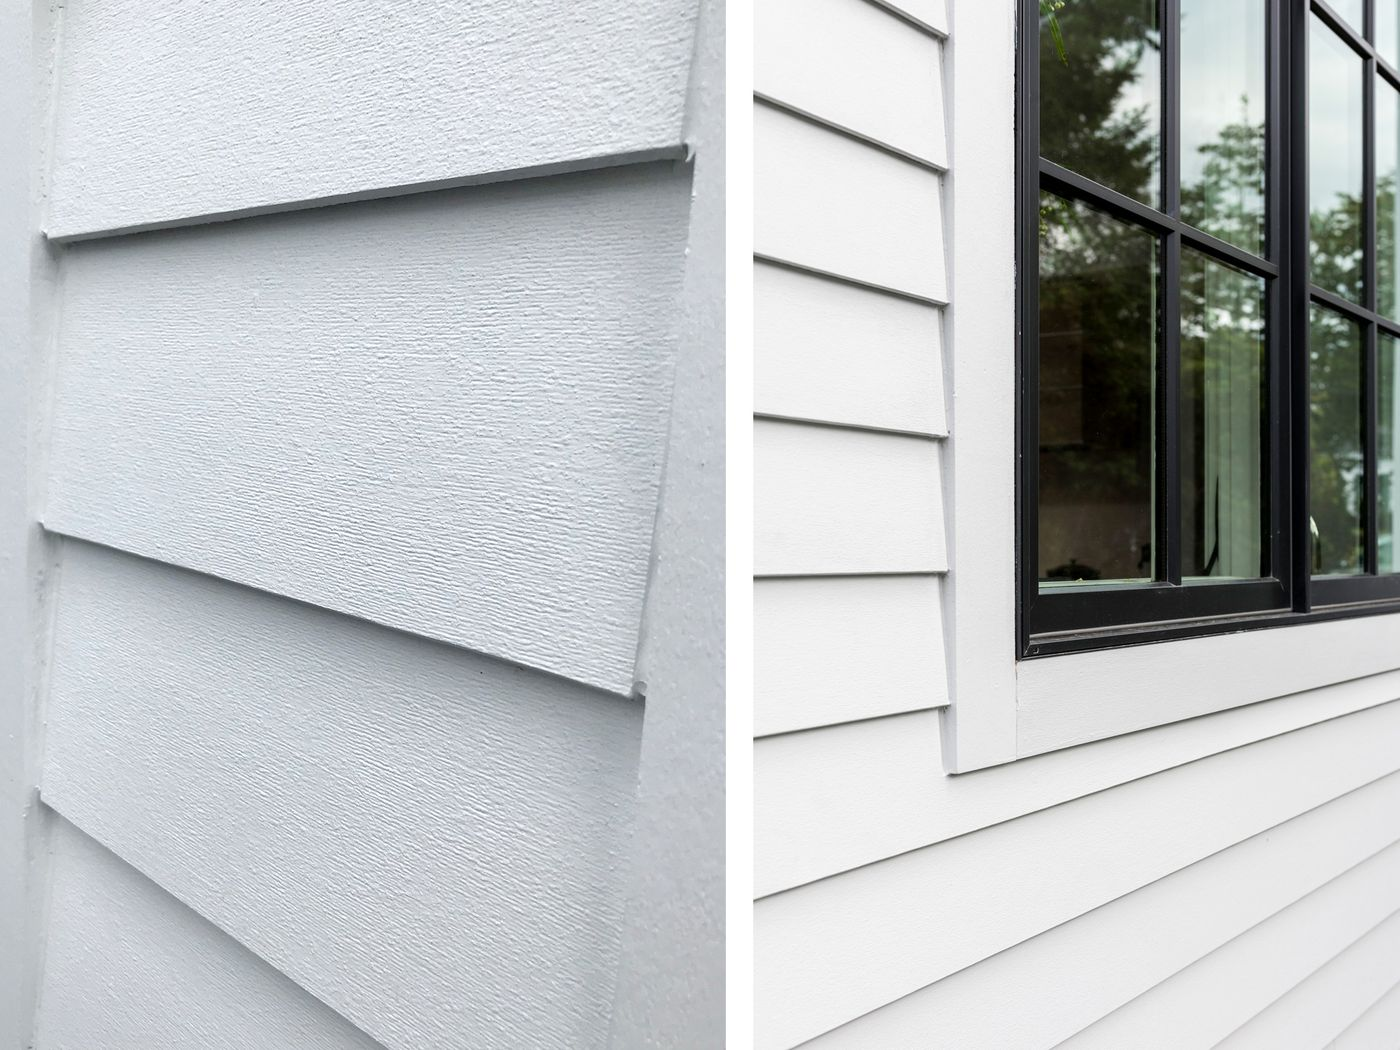 How To Choose The Best Siding For A House This Old House